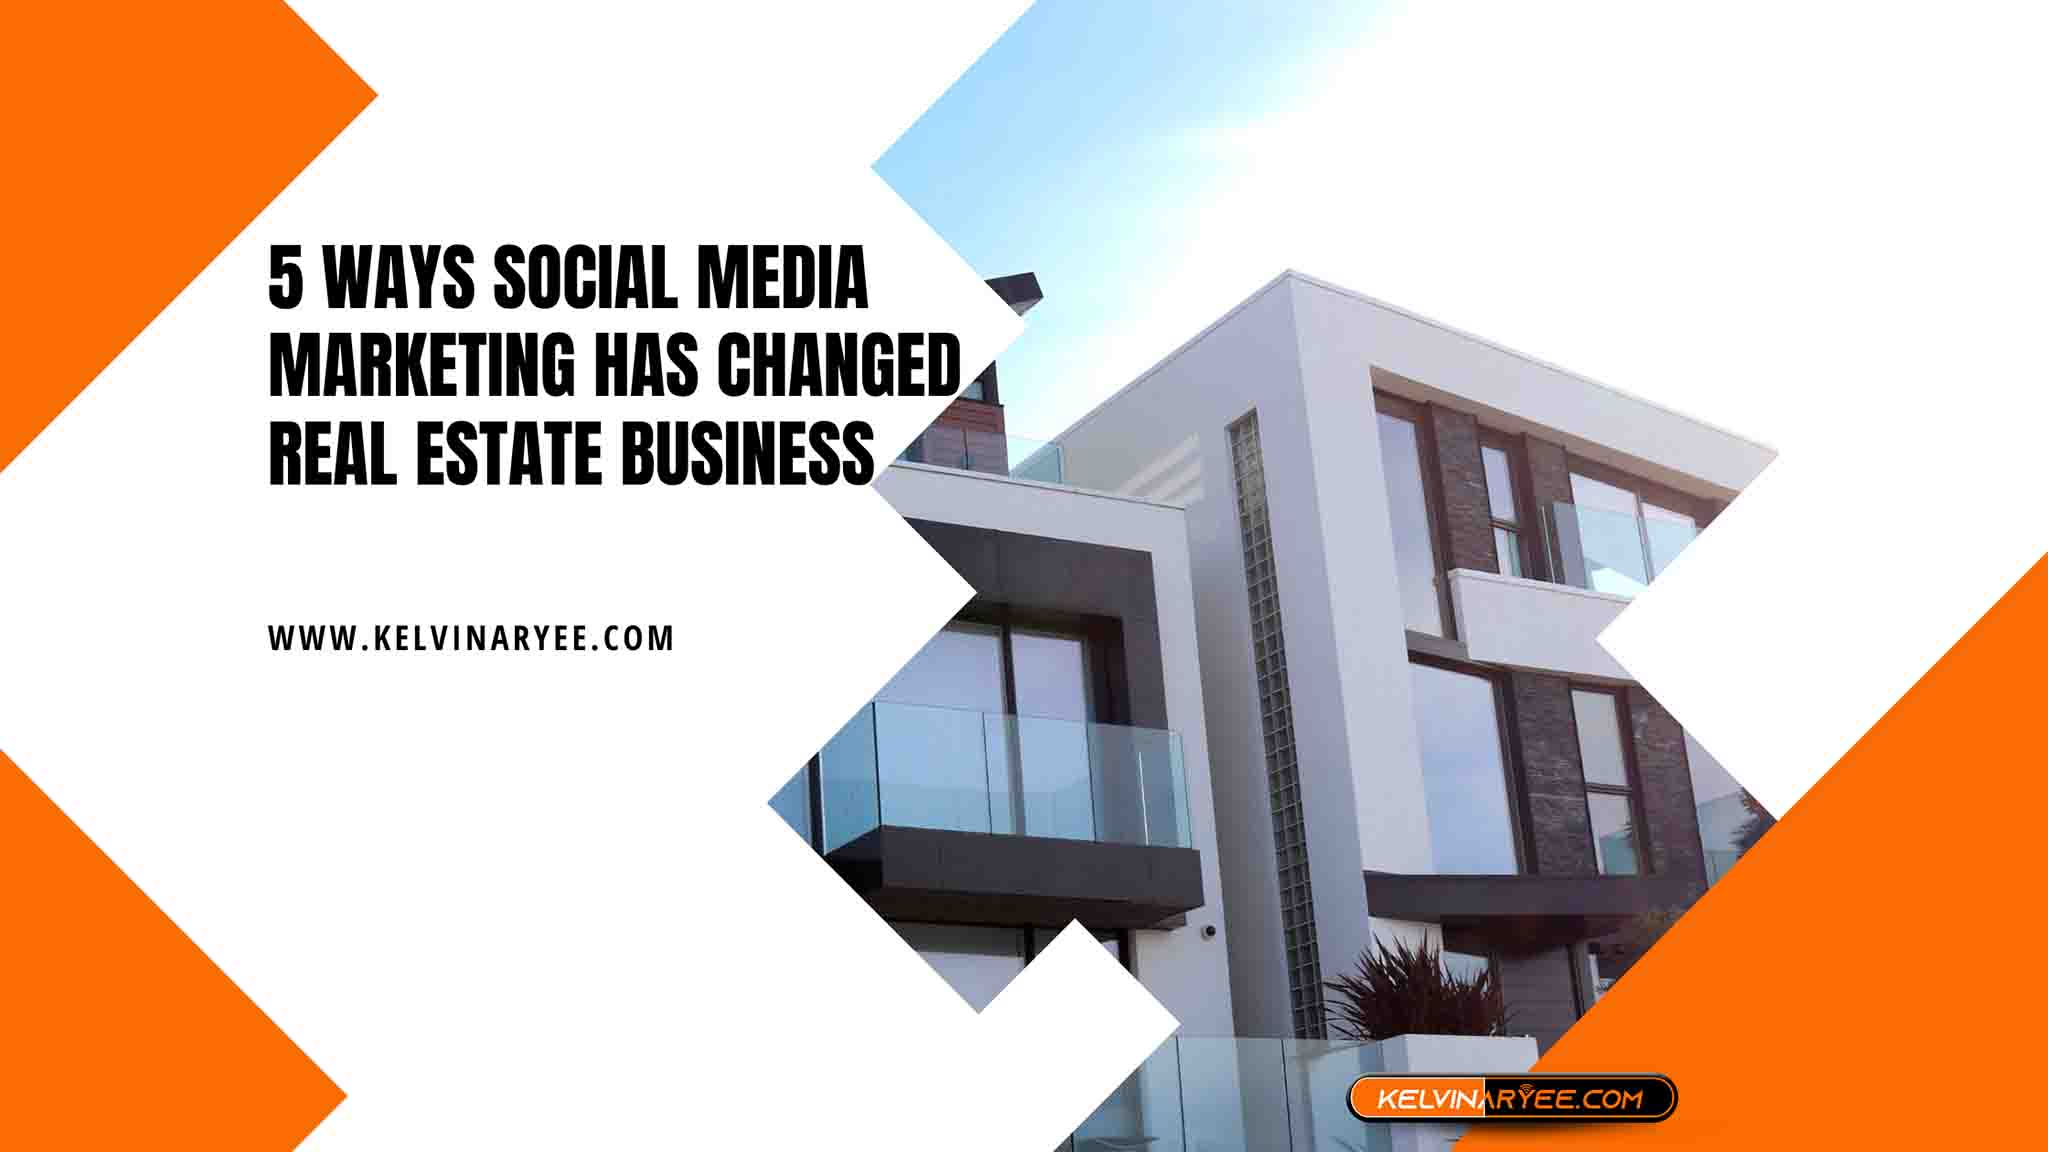 5 Ways Social Media Marketing Has Changed Real Estate Business